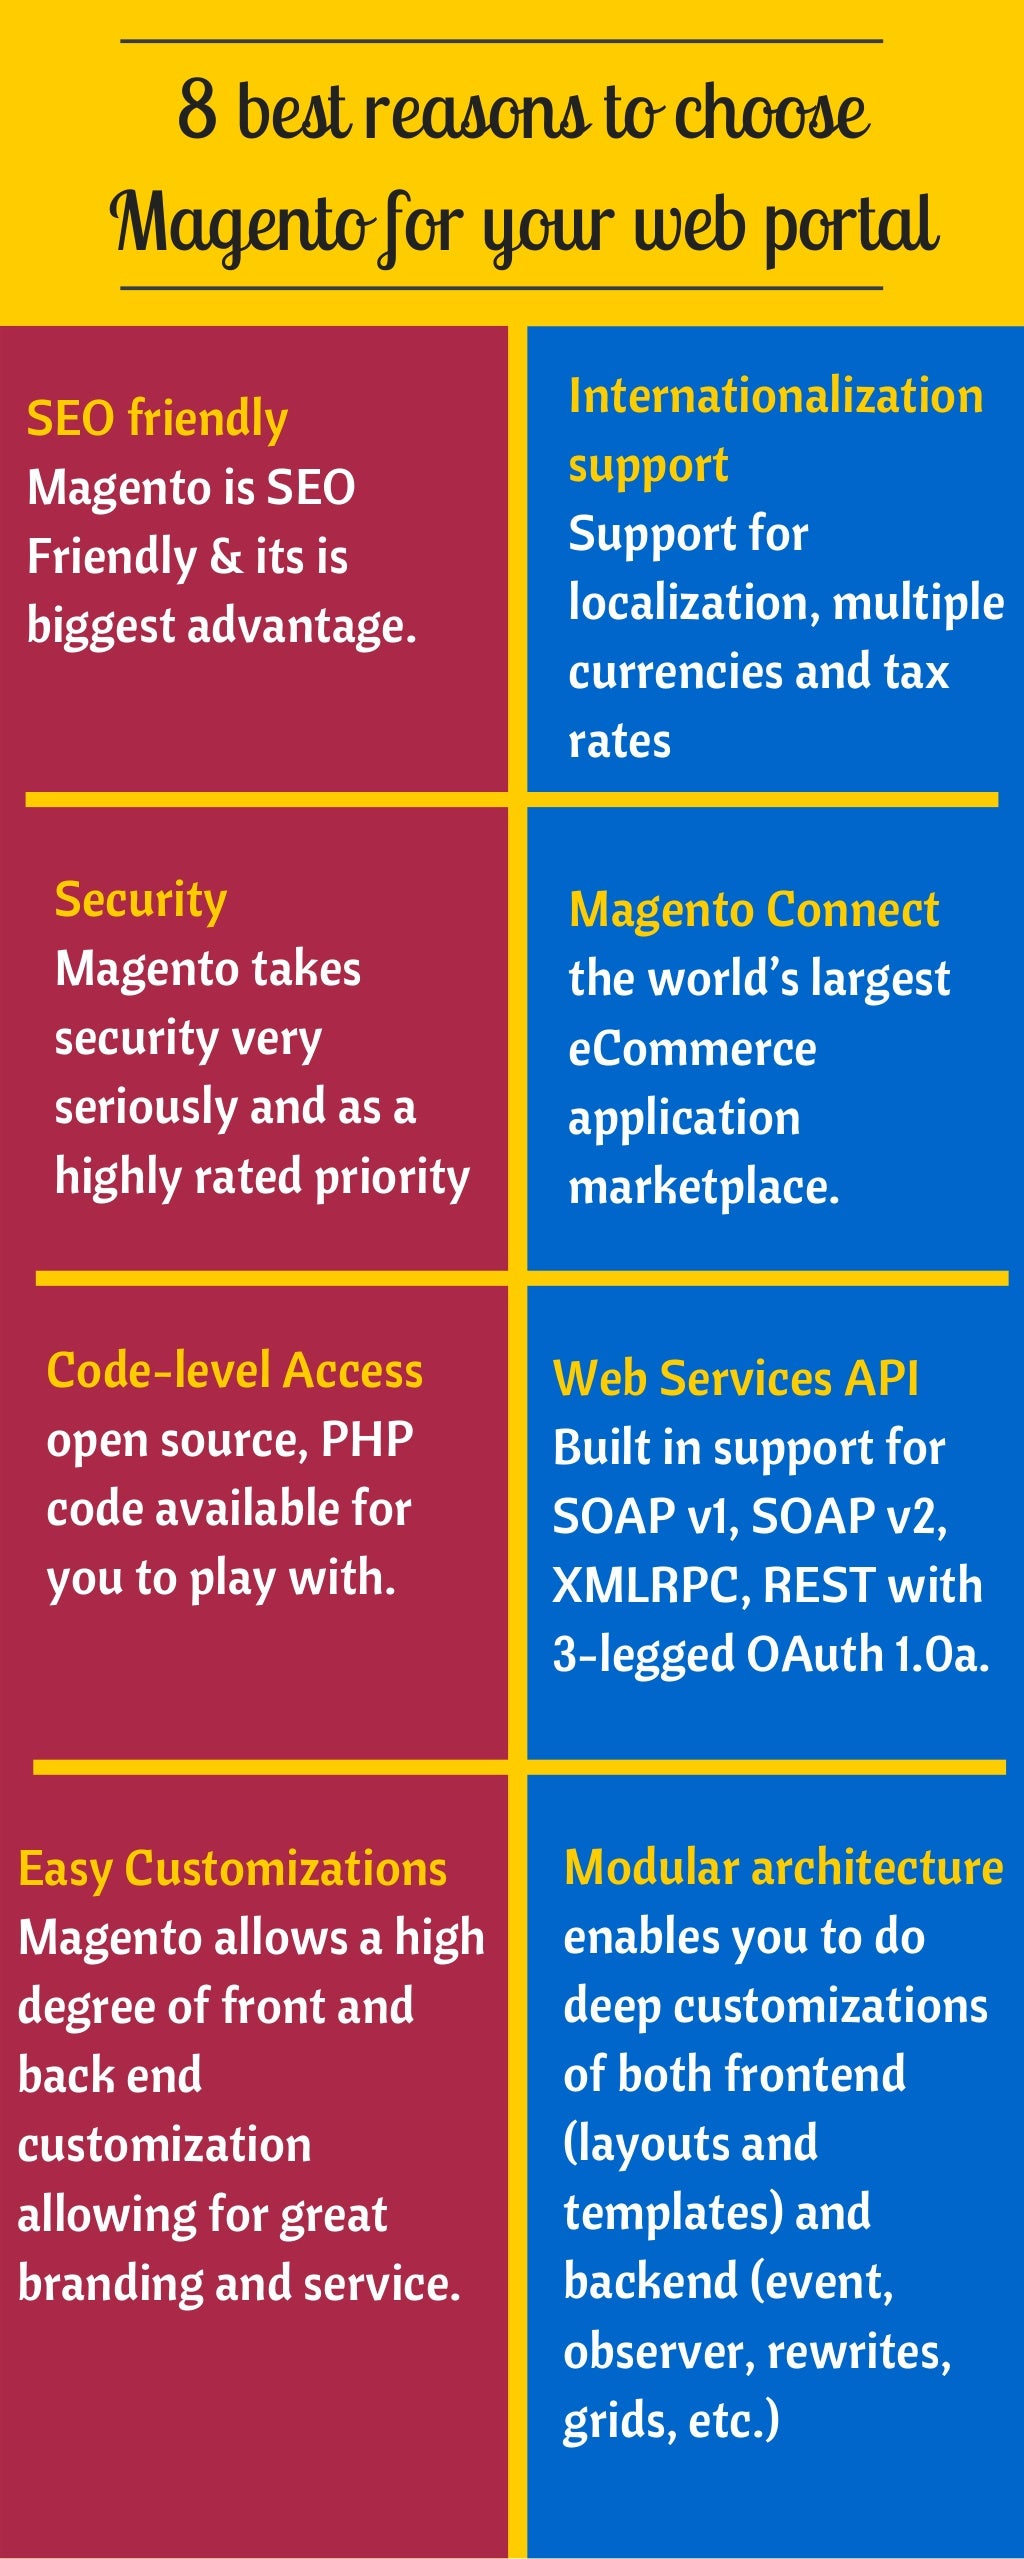 8 best reasons to choose magento for your web portal